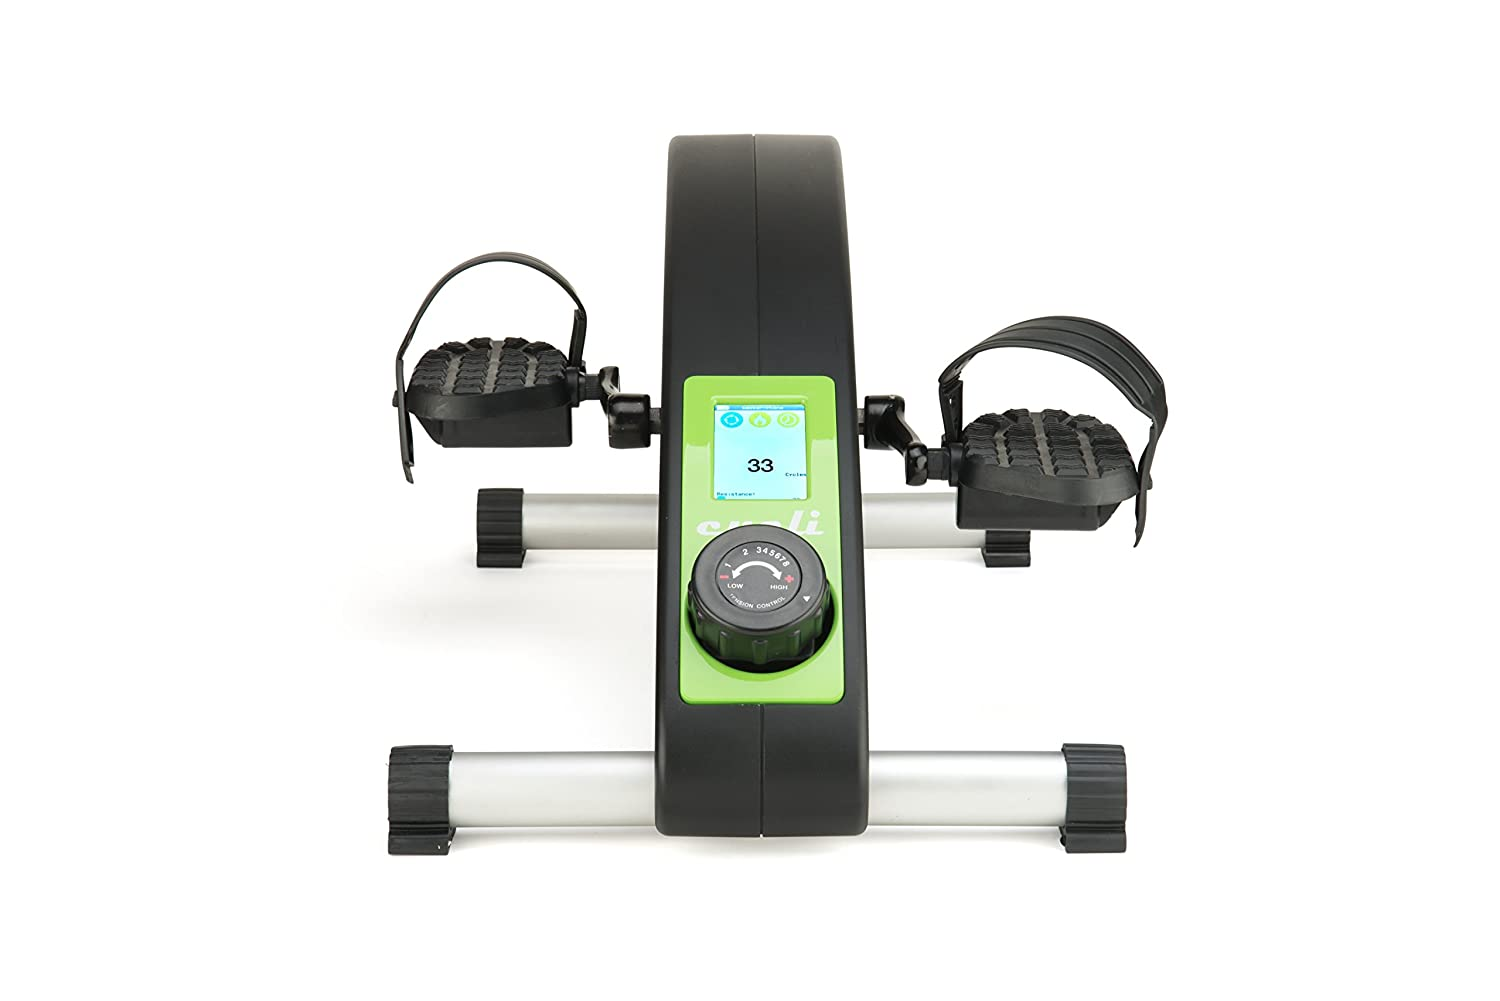 FlintFit Cycli Bluetooth Portable Stationary Cycle Under Desk Cycle for Calorie Burning